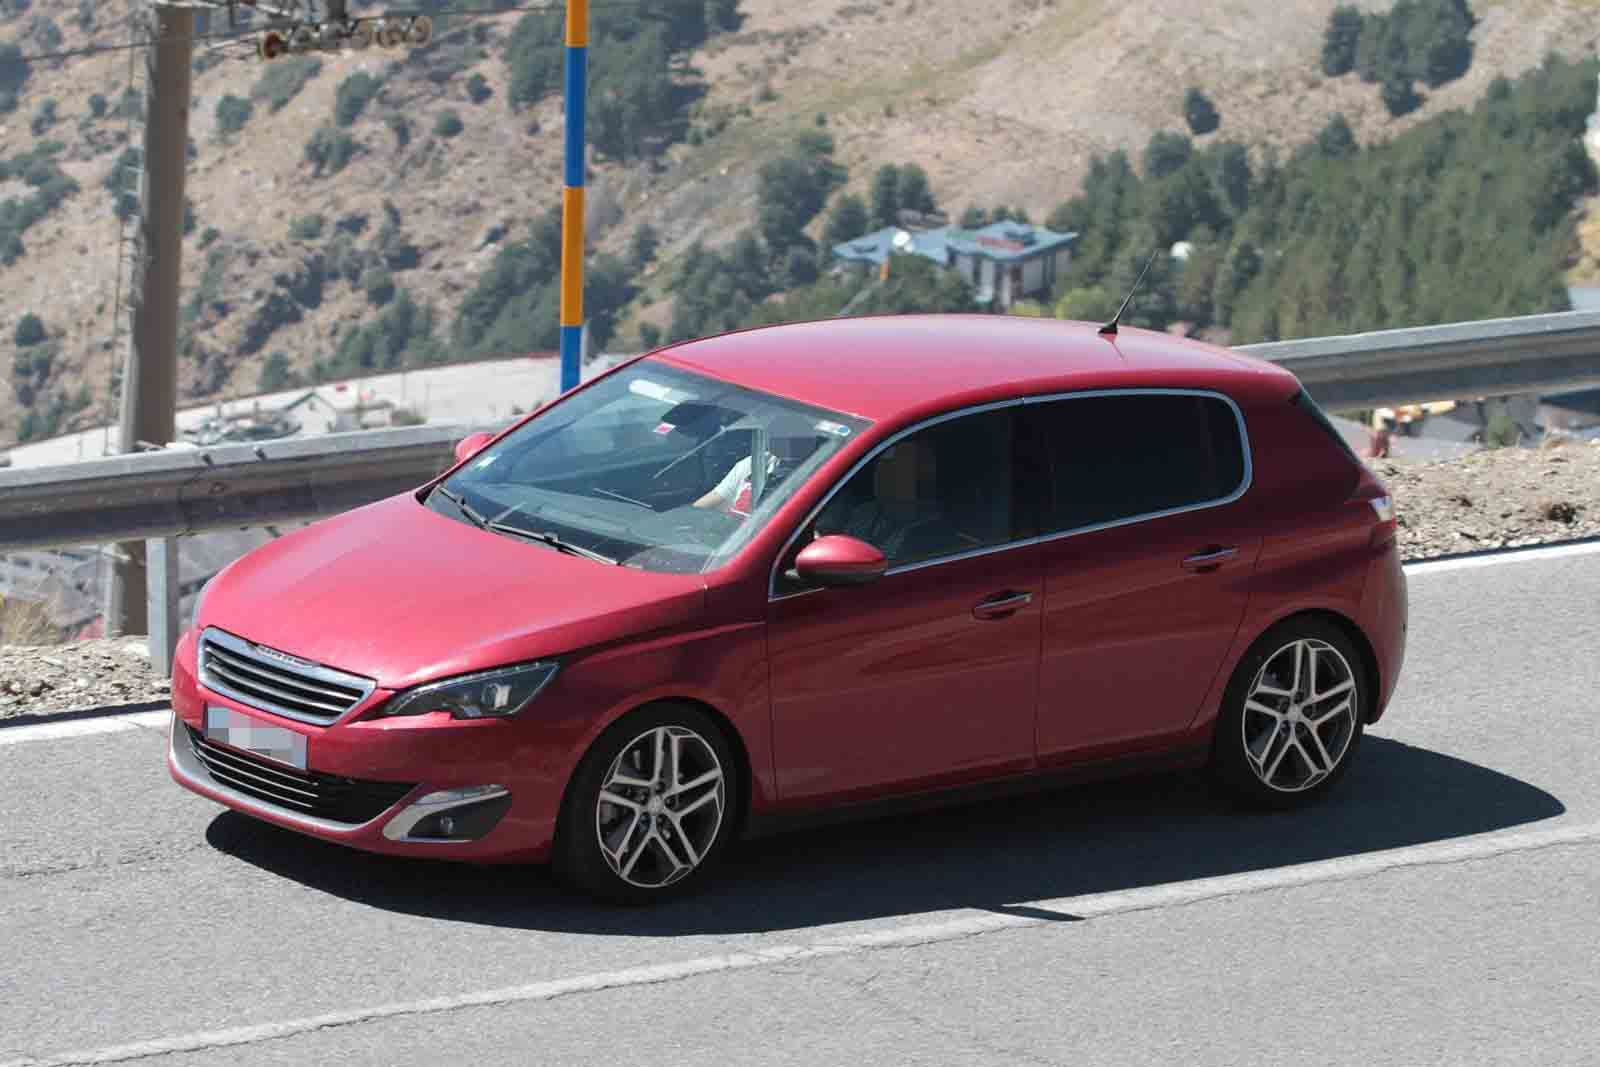 2015 Peugeot 308 GTI spied during final testing ahead of Paris